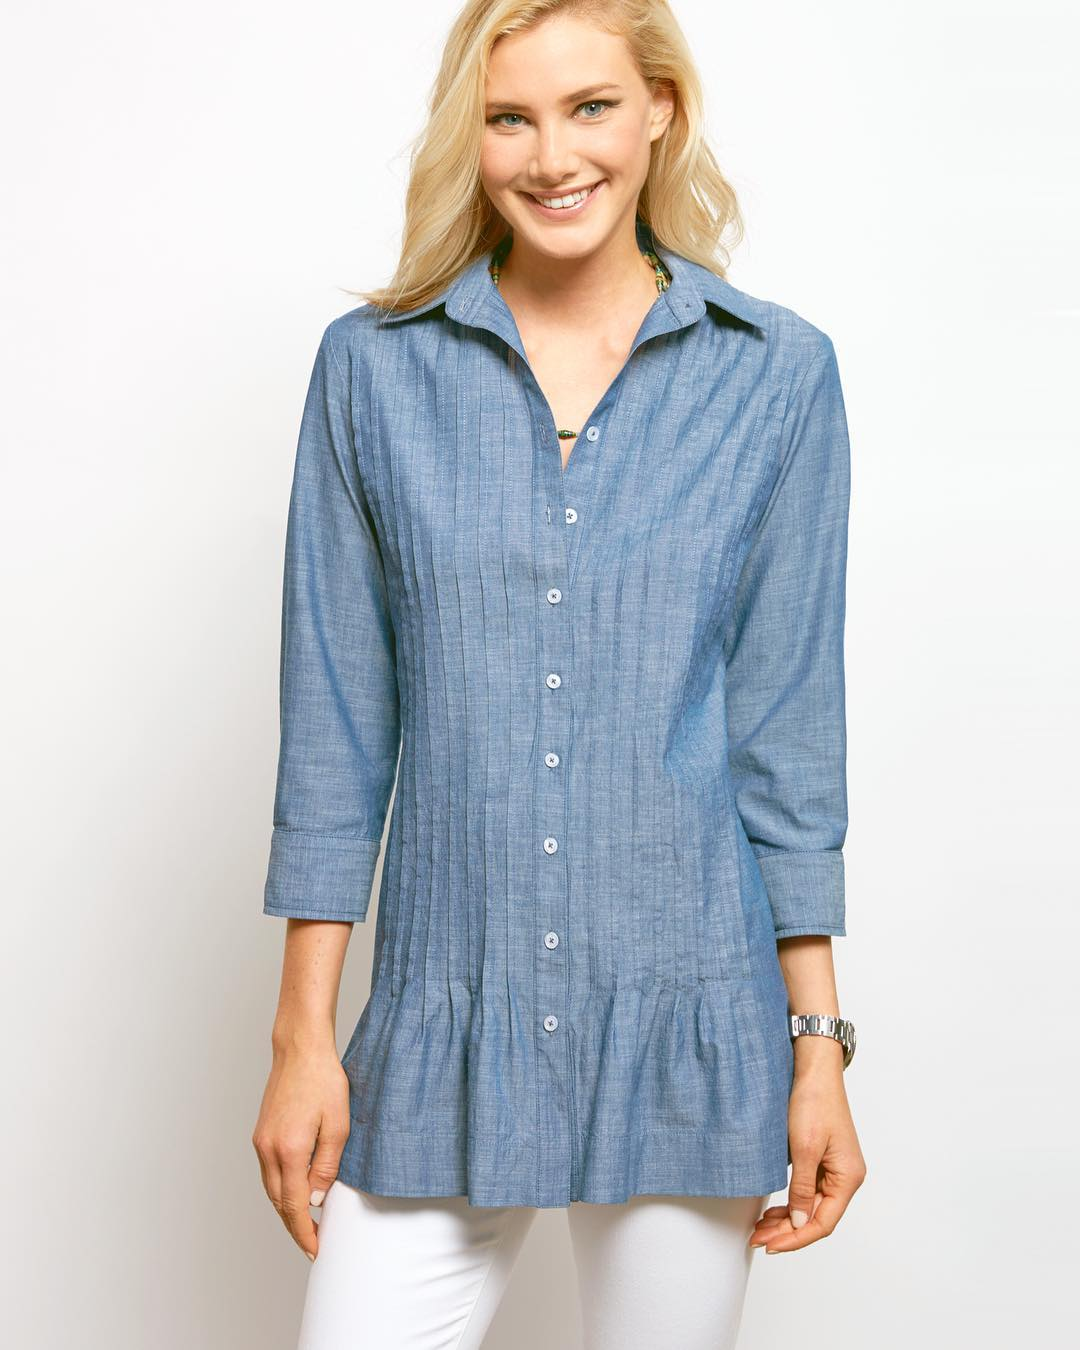 Feminine Button Down Tonic With White Jeans